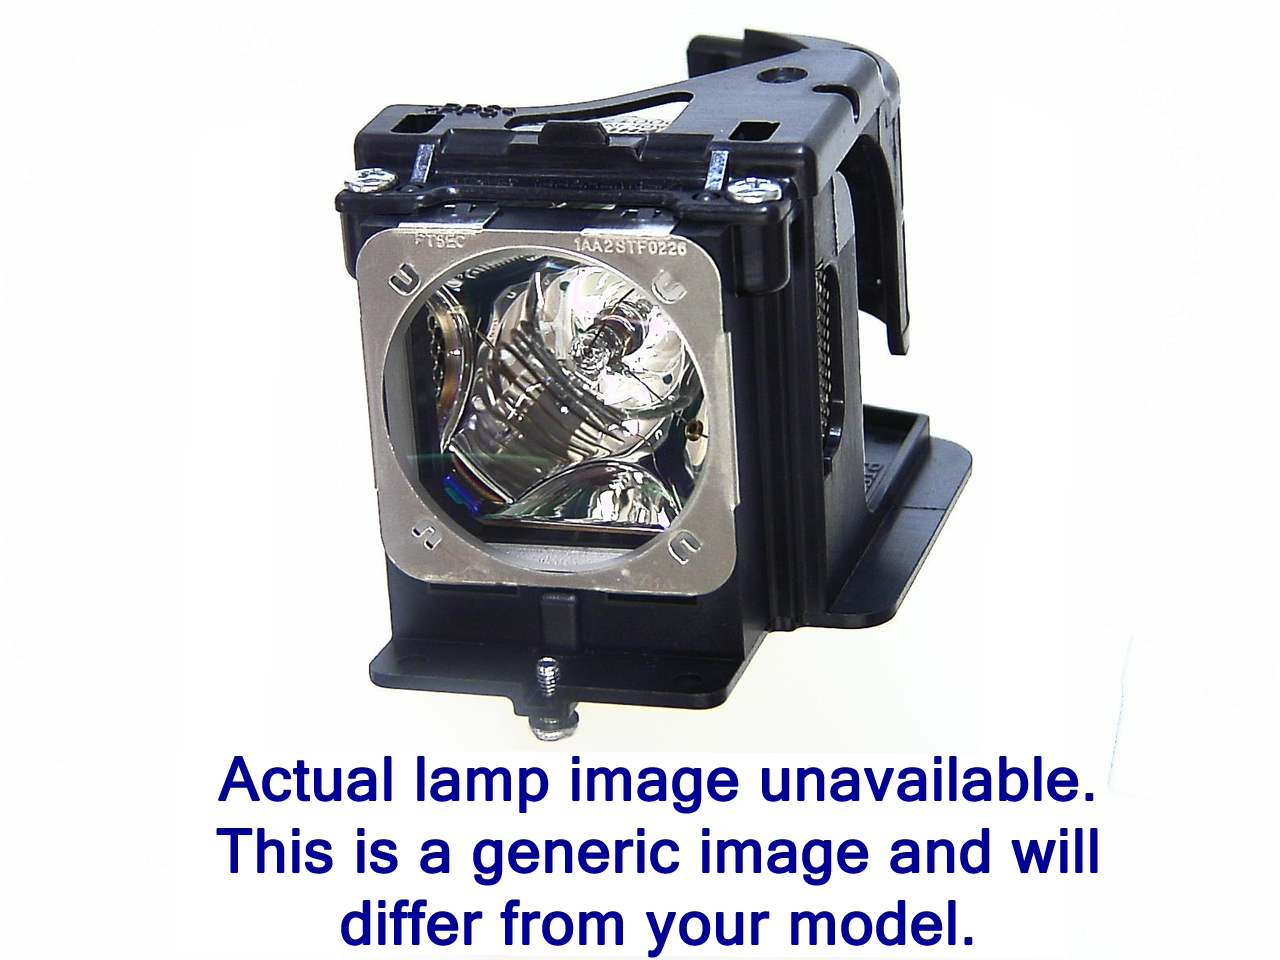 Smart Lamp for Serial Numbers 2101 a 2600 inclusive For EIKI LC-SB25 (XB2501 Lamp) Proyector.